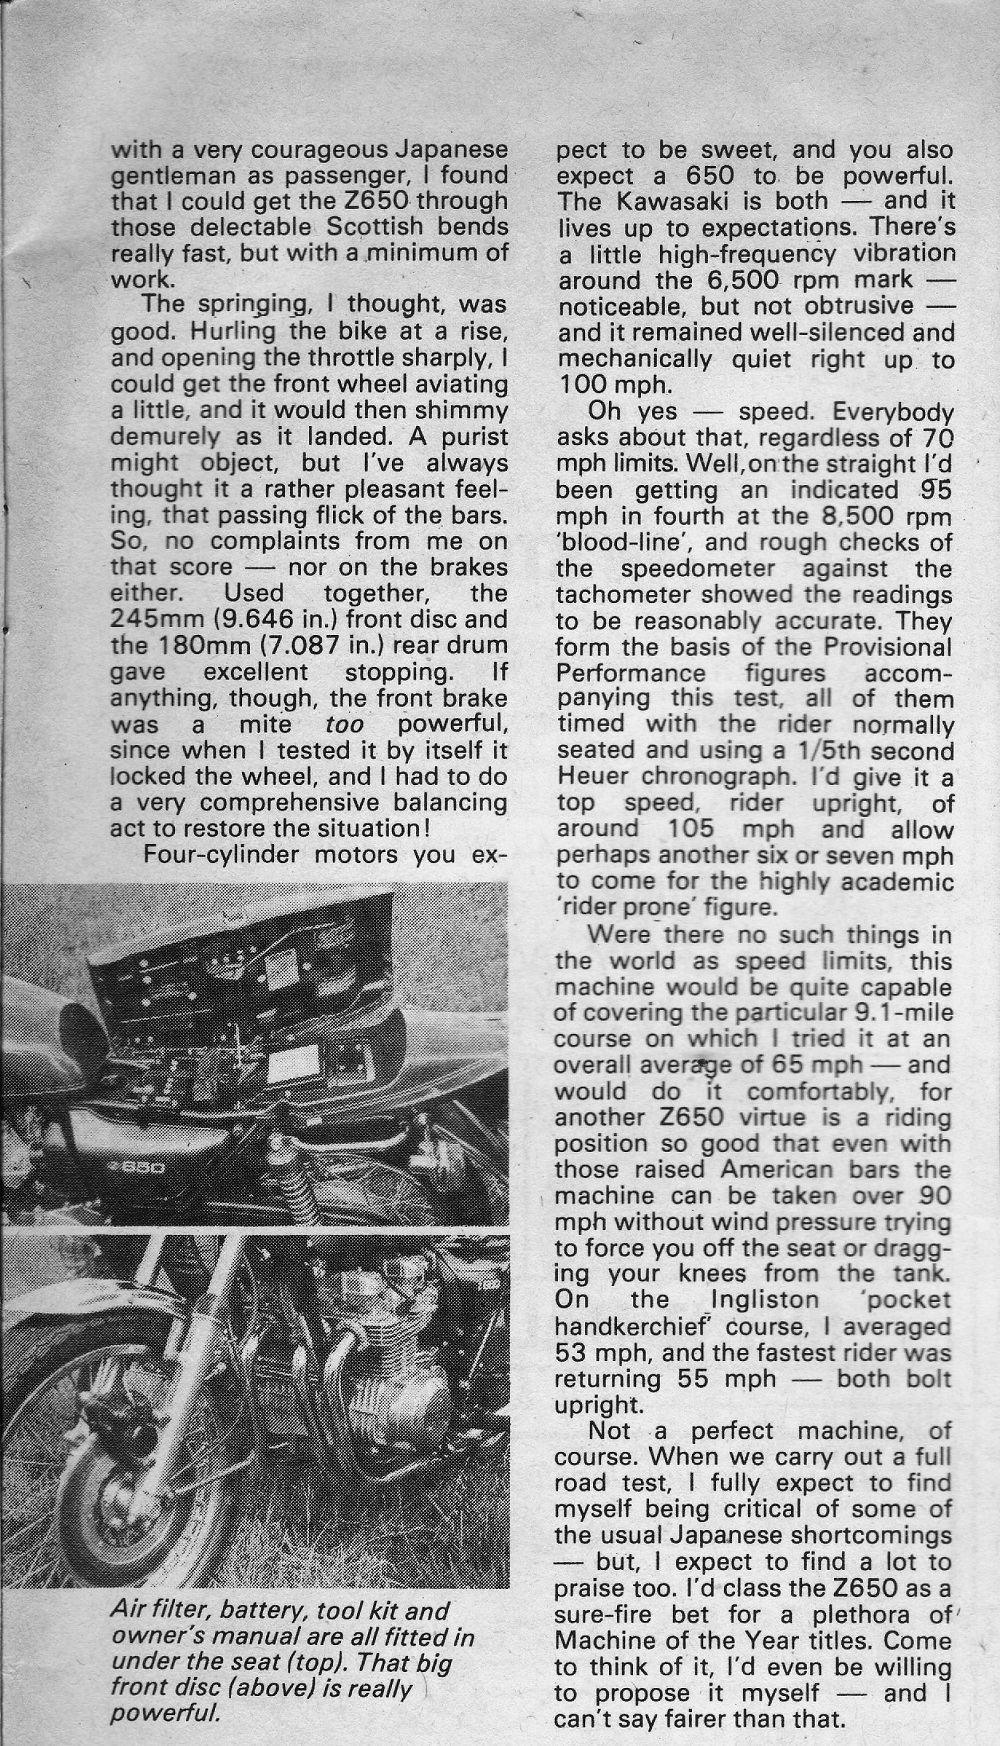 1976 Kawasaki Z650 road test.3.jpg